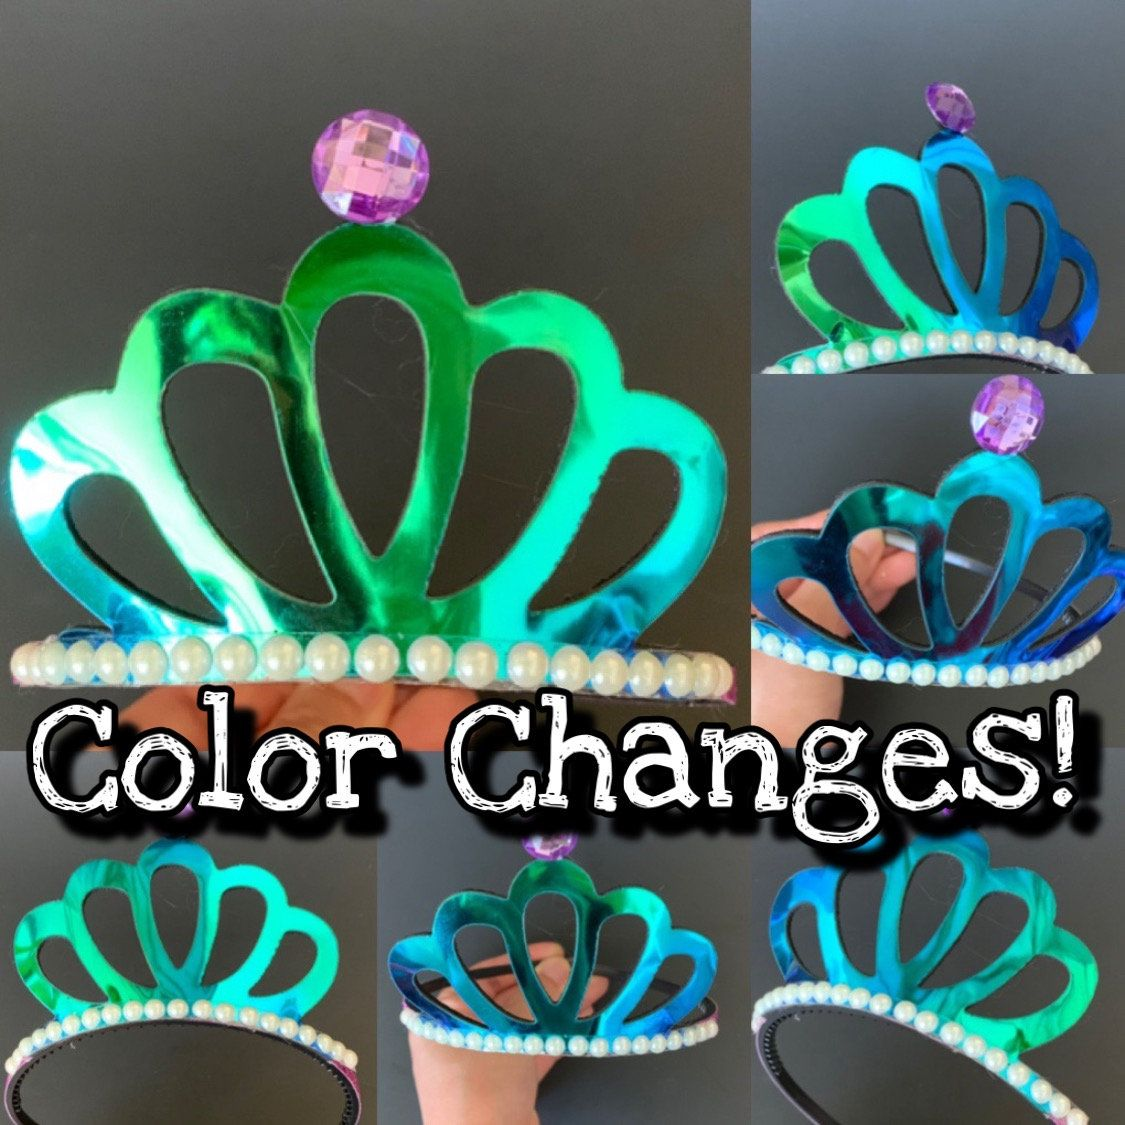 Disney Princess Ariel Little Mermaid Costume Crown Tiara Costume Dress Up